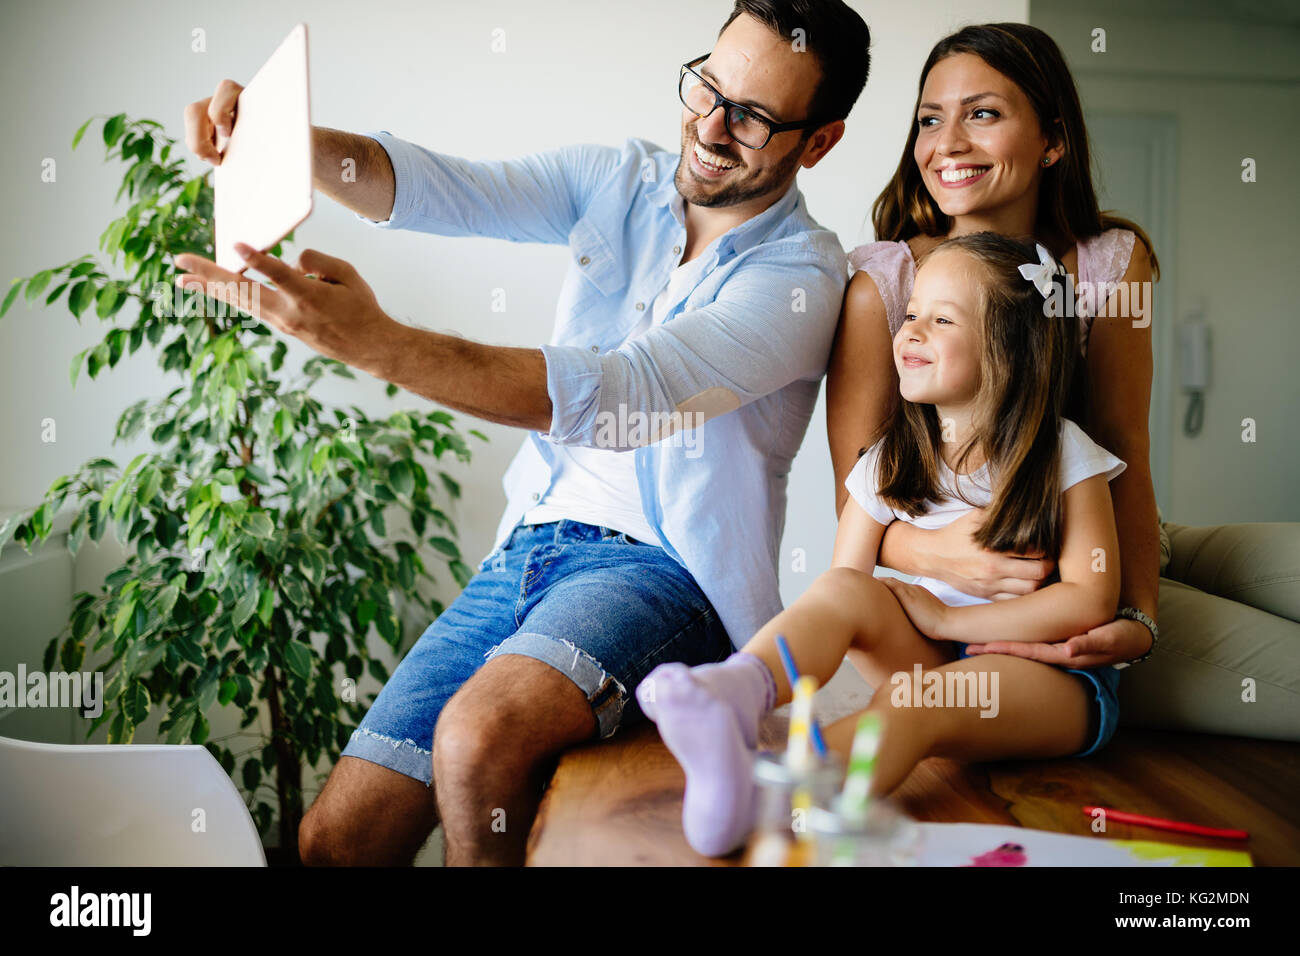 Happy family taking selfie in their house - Stock Image